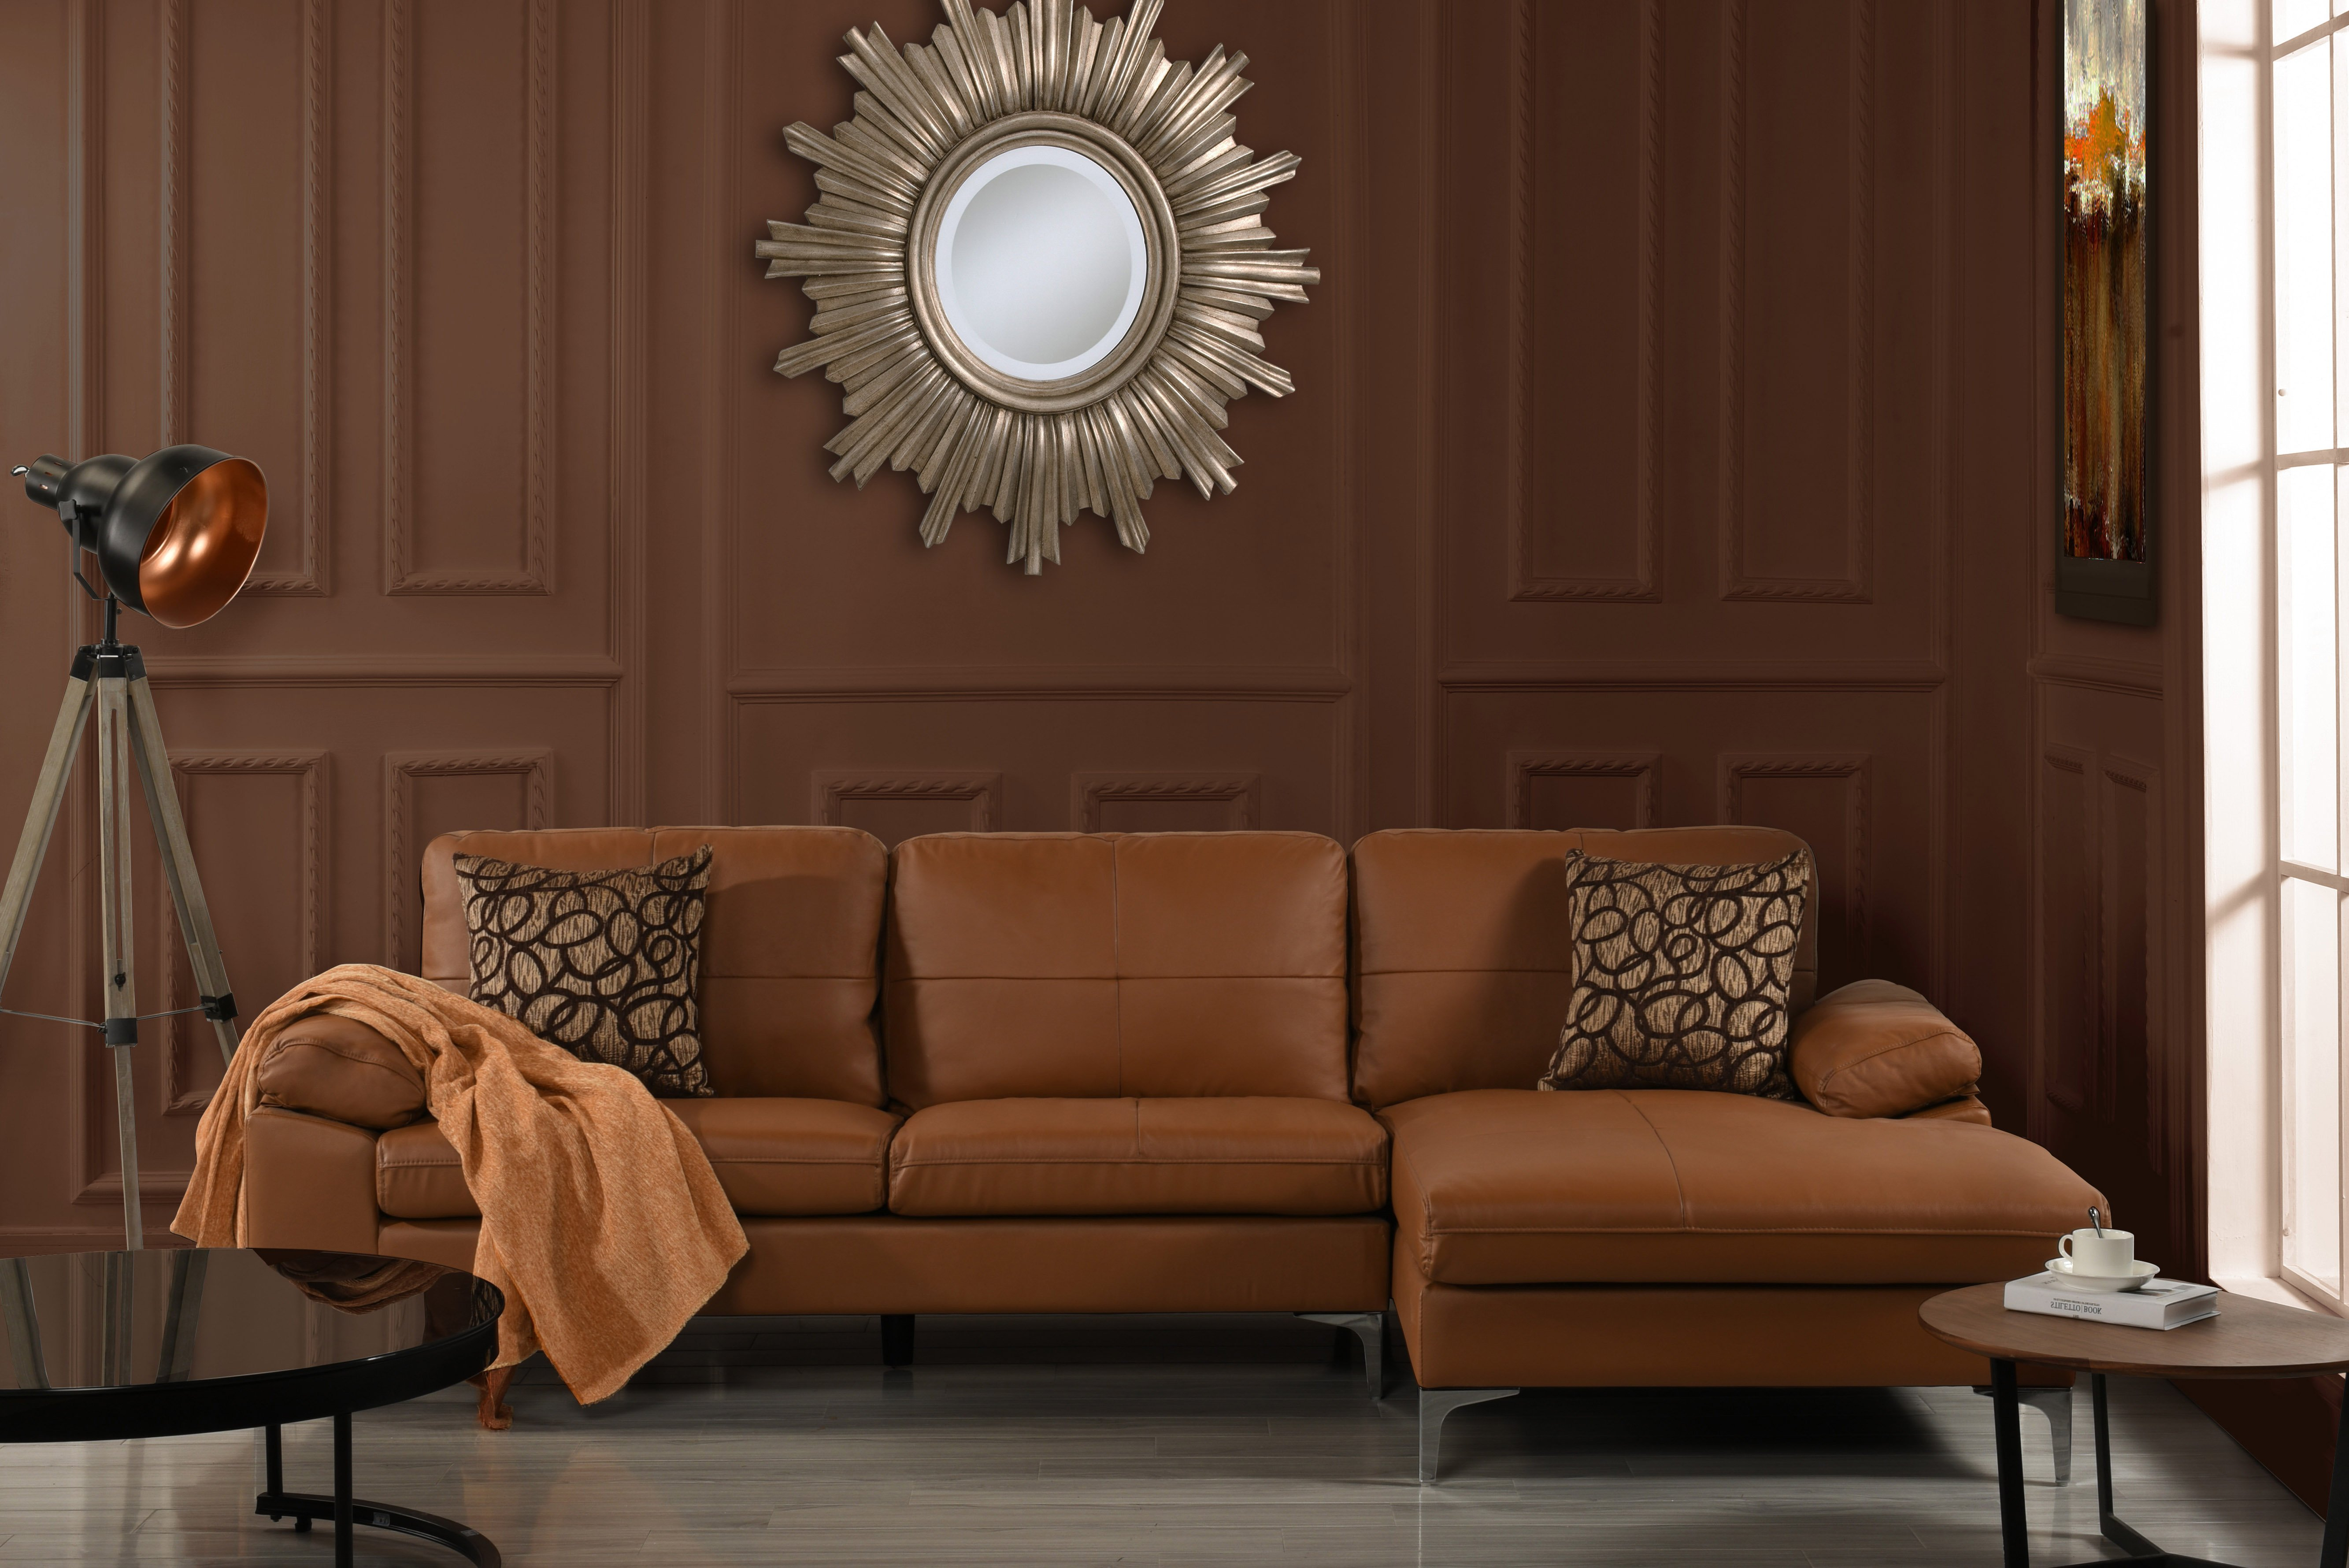 Sofa On Sale Ebay Large Leather Sectional Sofa L Shape Couch With Chaise 108 7